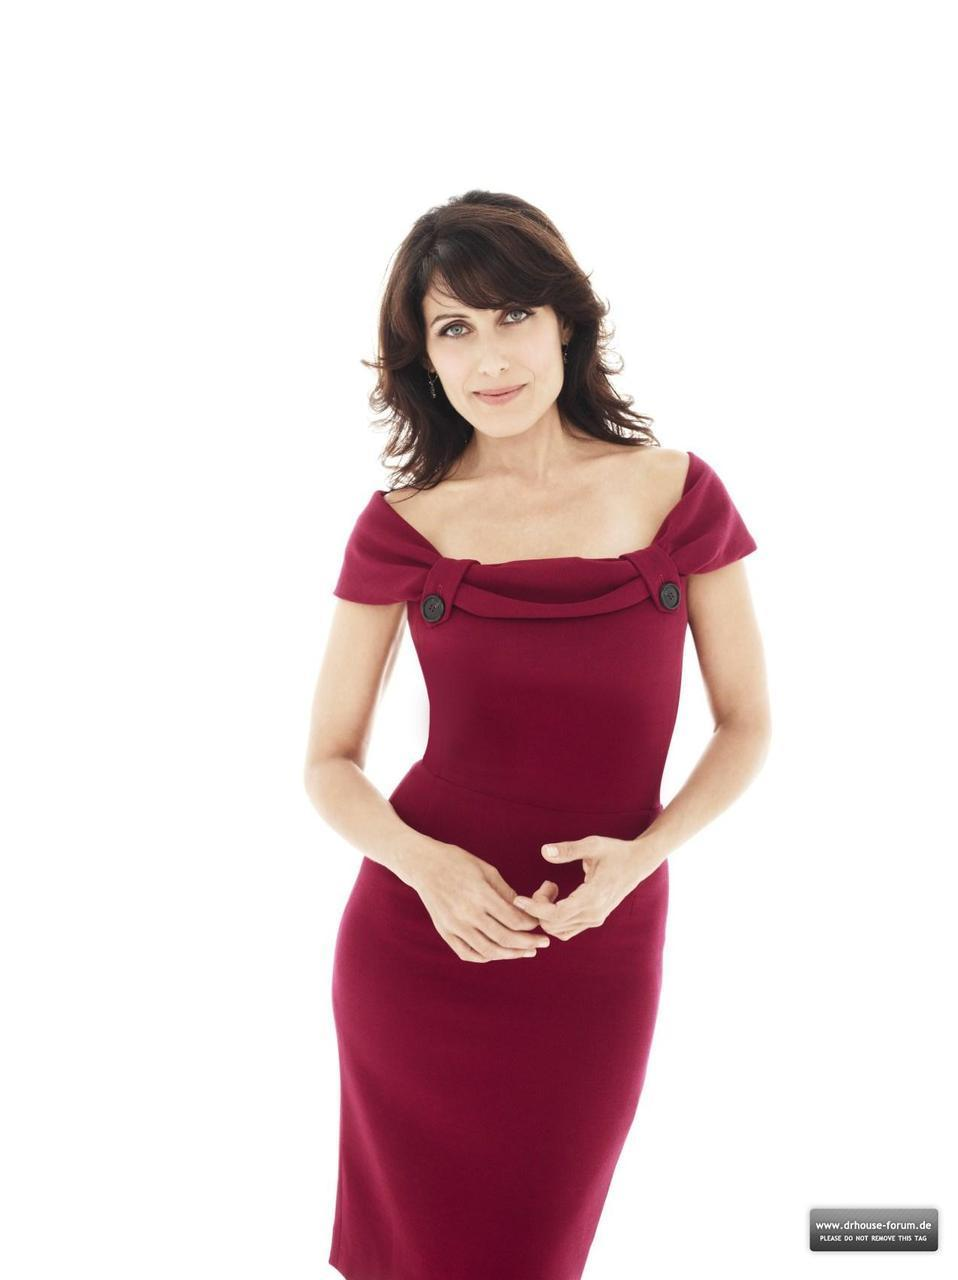 Lisa Cuddy Season 7 Promotional 사진 [HQ]